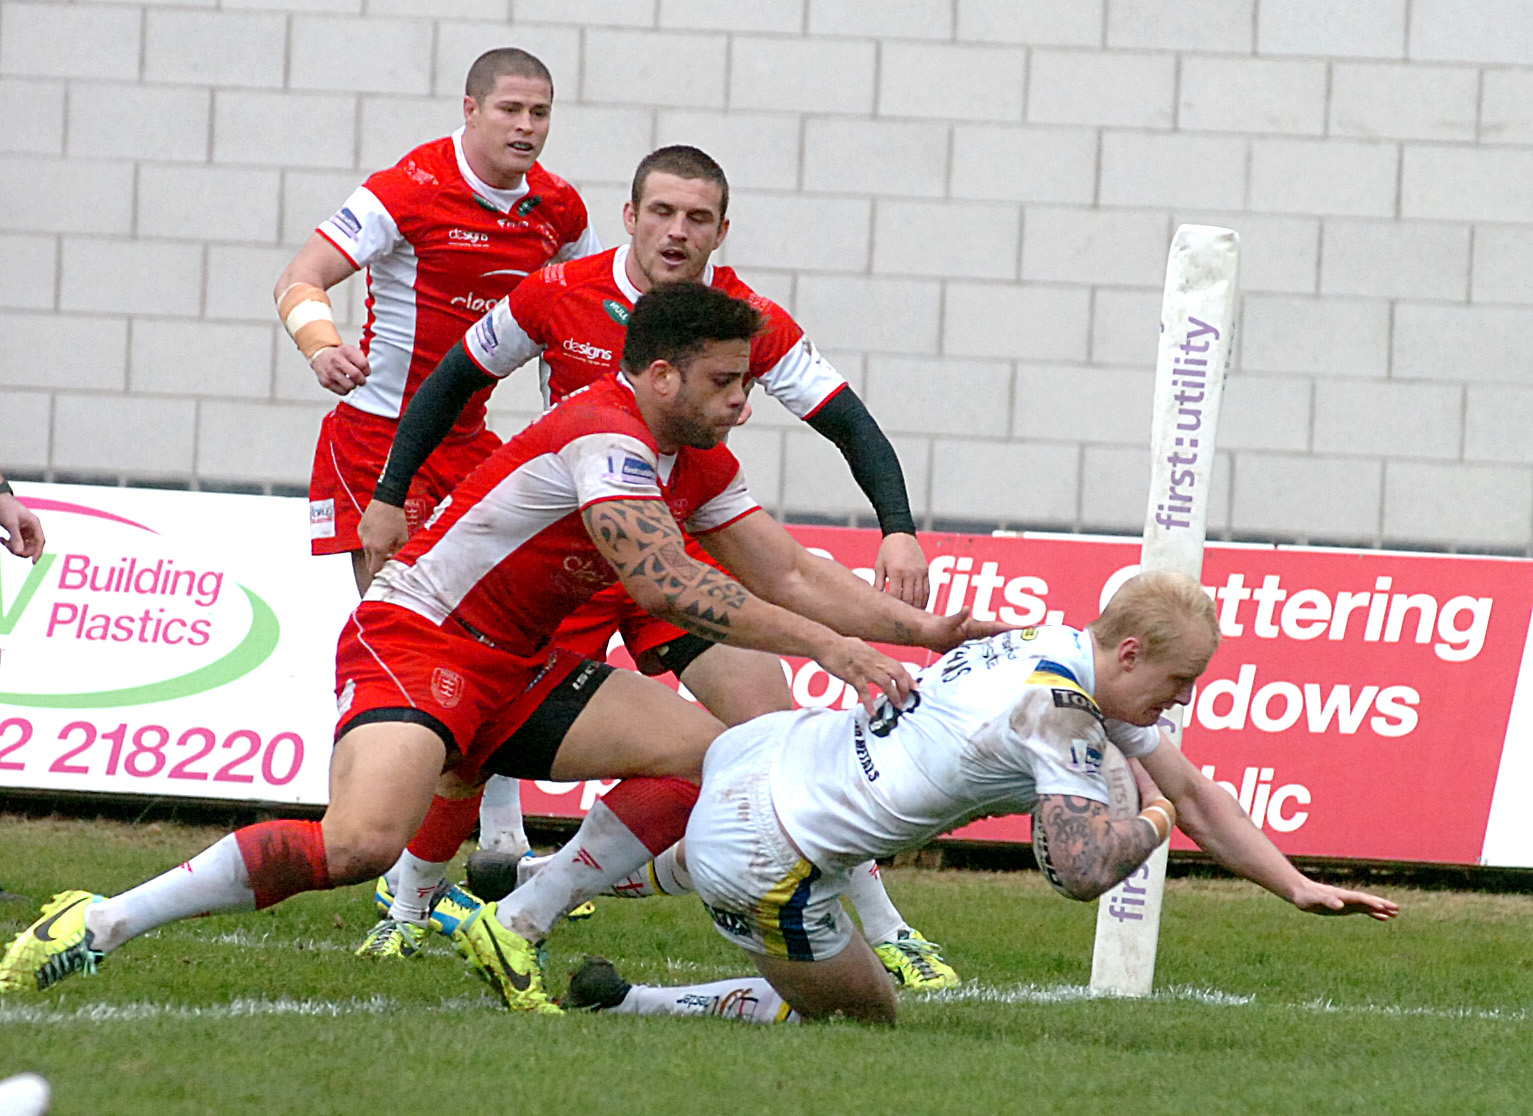 Rhys Evans' converted try at Hull KR put Wolves ahead for the first time after they had trailed 12-0. Picture by Mike Boden